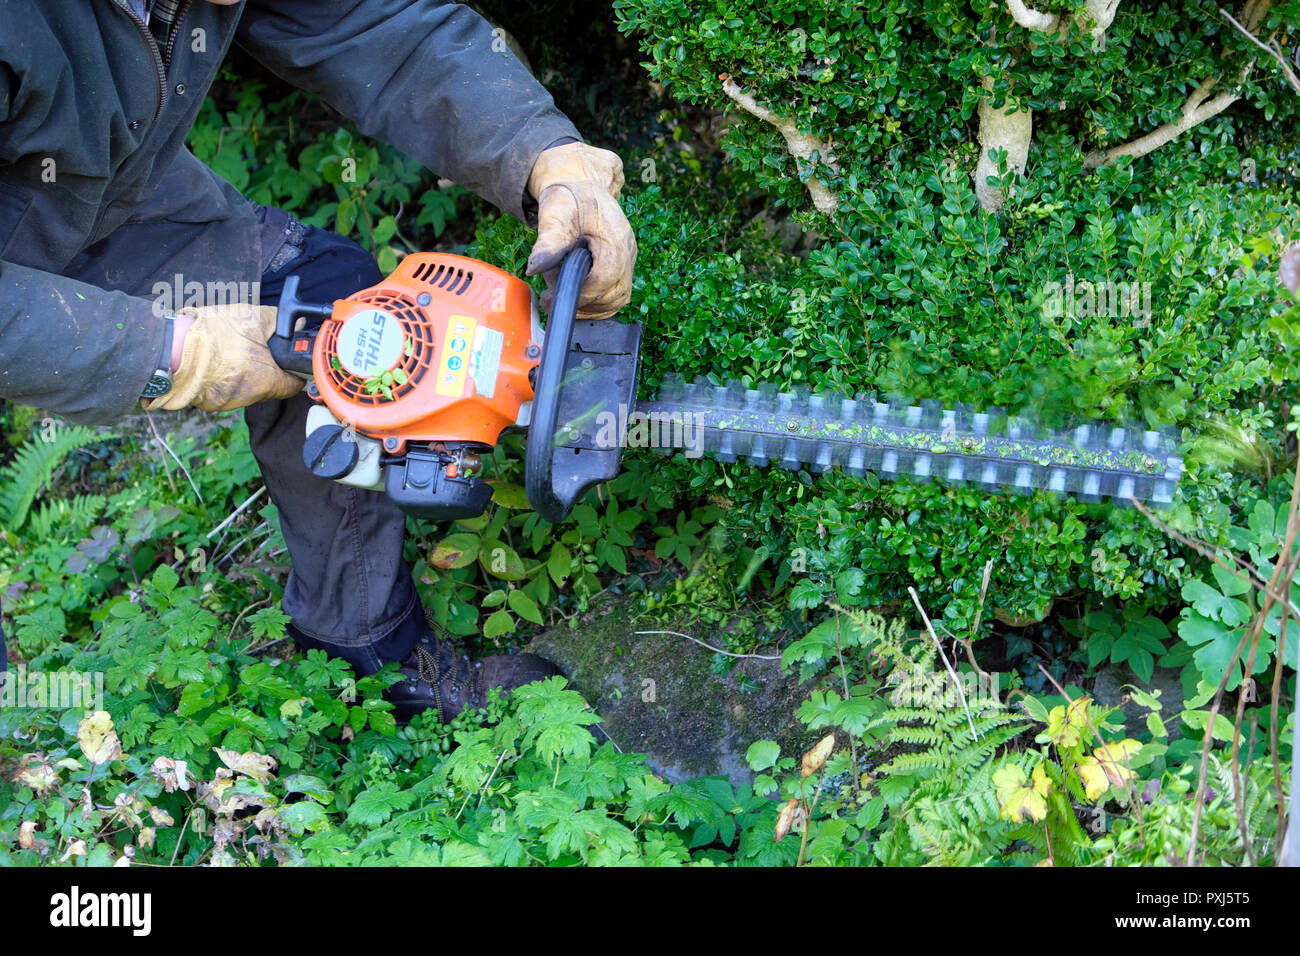 Man wearing ear protectors trimming hedge with hedge trimmer in autumn garden in Carmarthenshire Wales UK  KATHY DEWITT - Stock Image